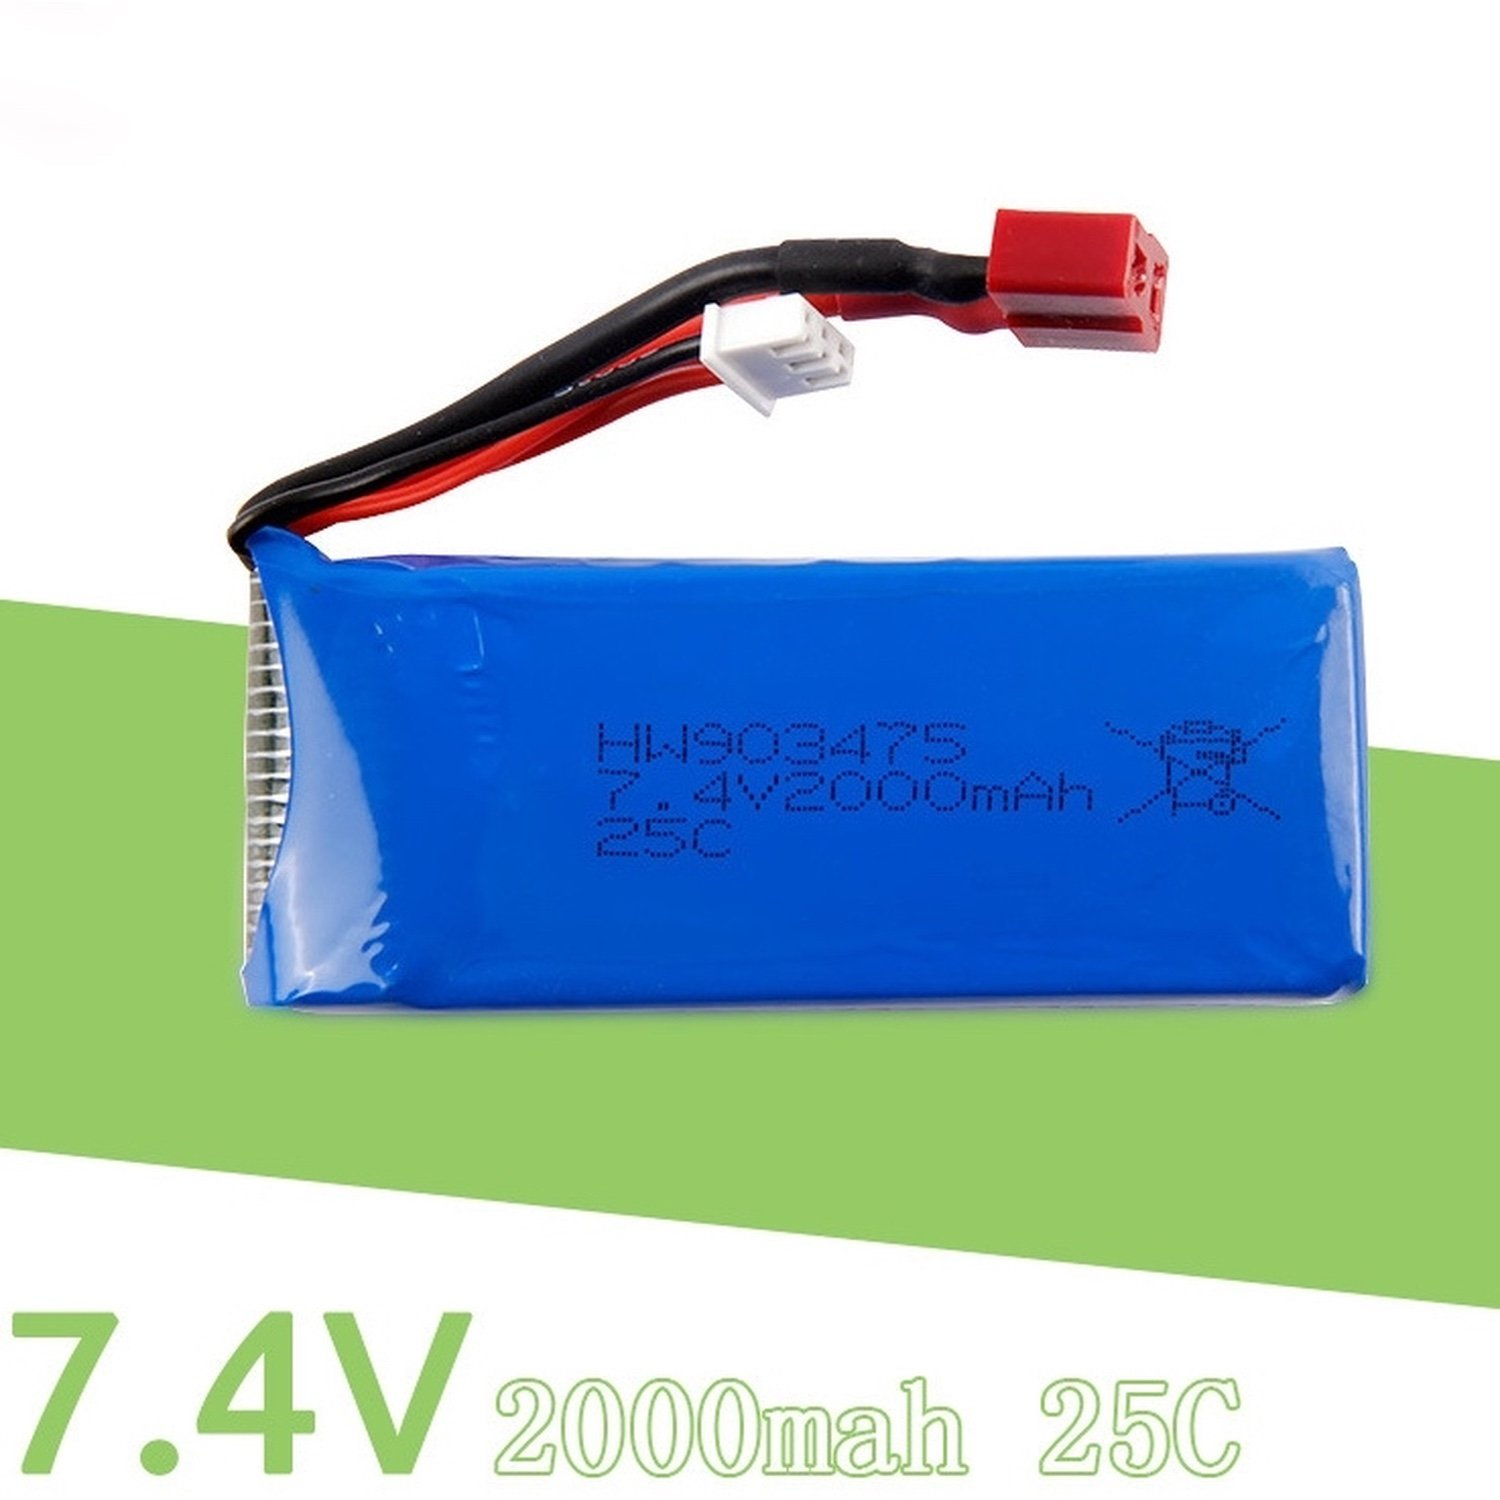 SYMA X8W/X8C/X8SW Battery-7, 4v 2000 mah, 25C 7 4v 850mah supply of remote control aircraft flying saucer axis lithium battery 7 4v 850mah 20c jst plug 703048